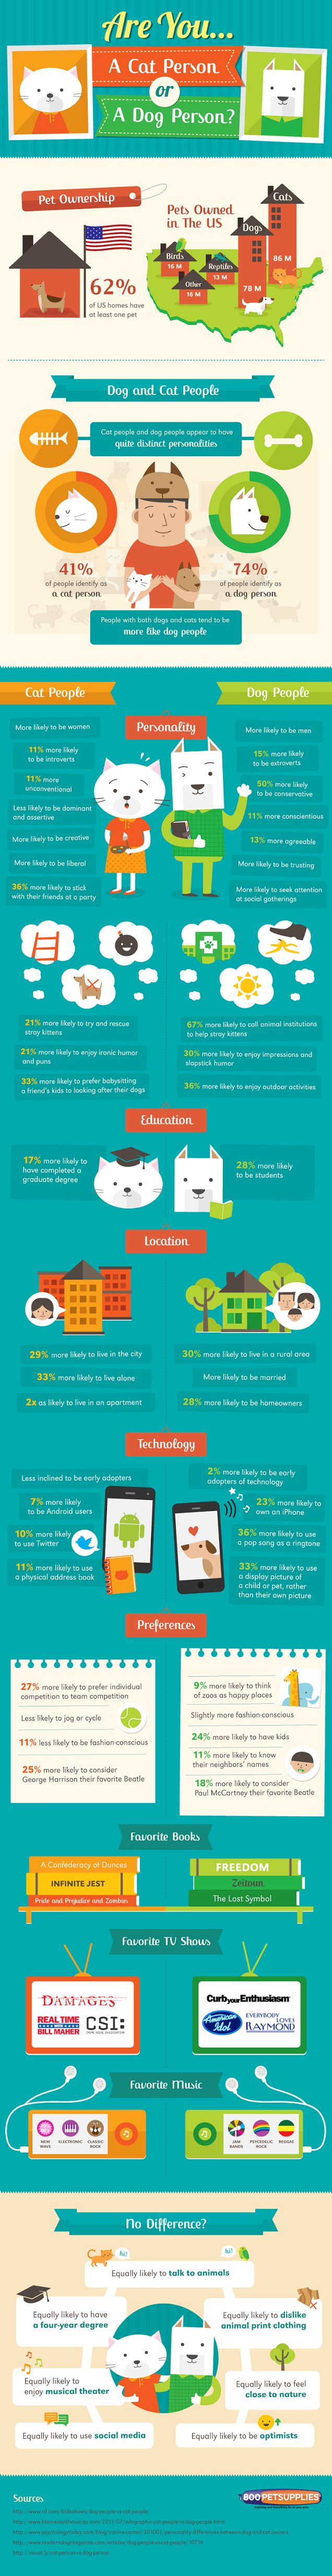 Are You a Cat Person Or a Dog Person? #infographic